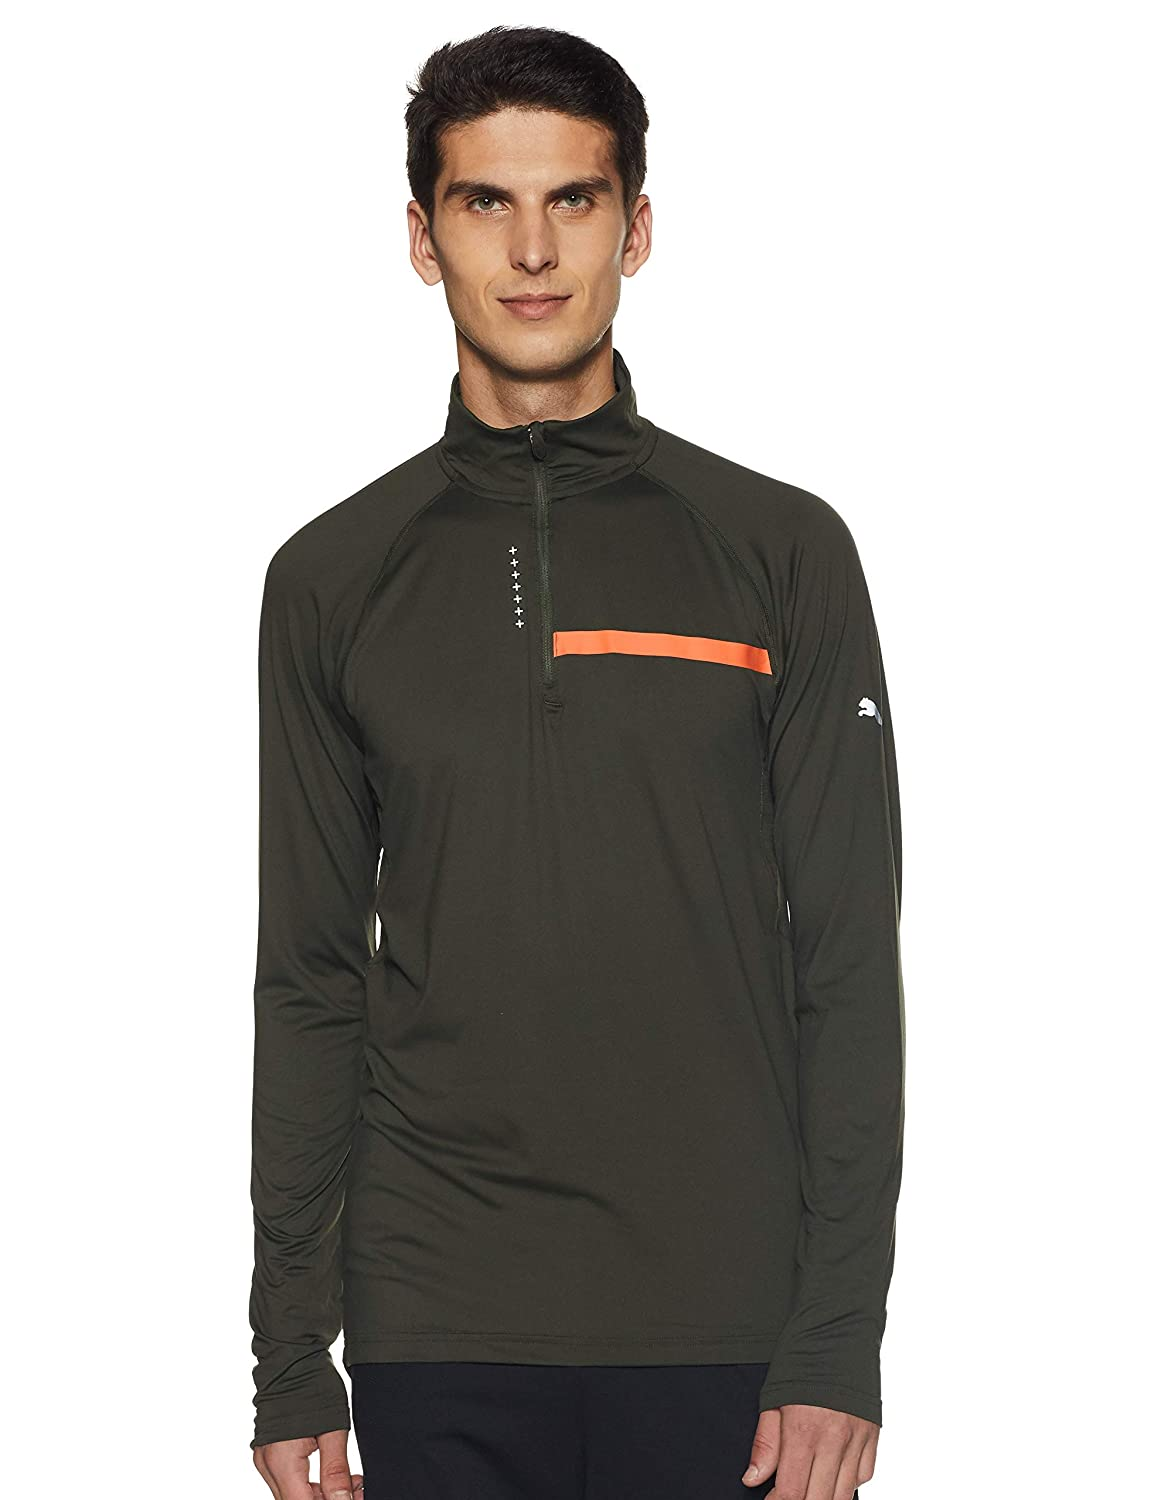 PUMA Herren Ignite Halfzip Top Sweatshirt